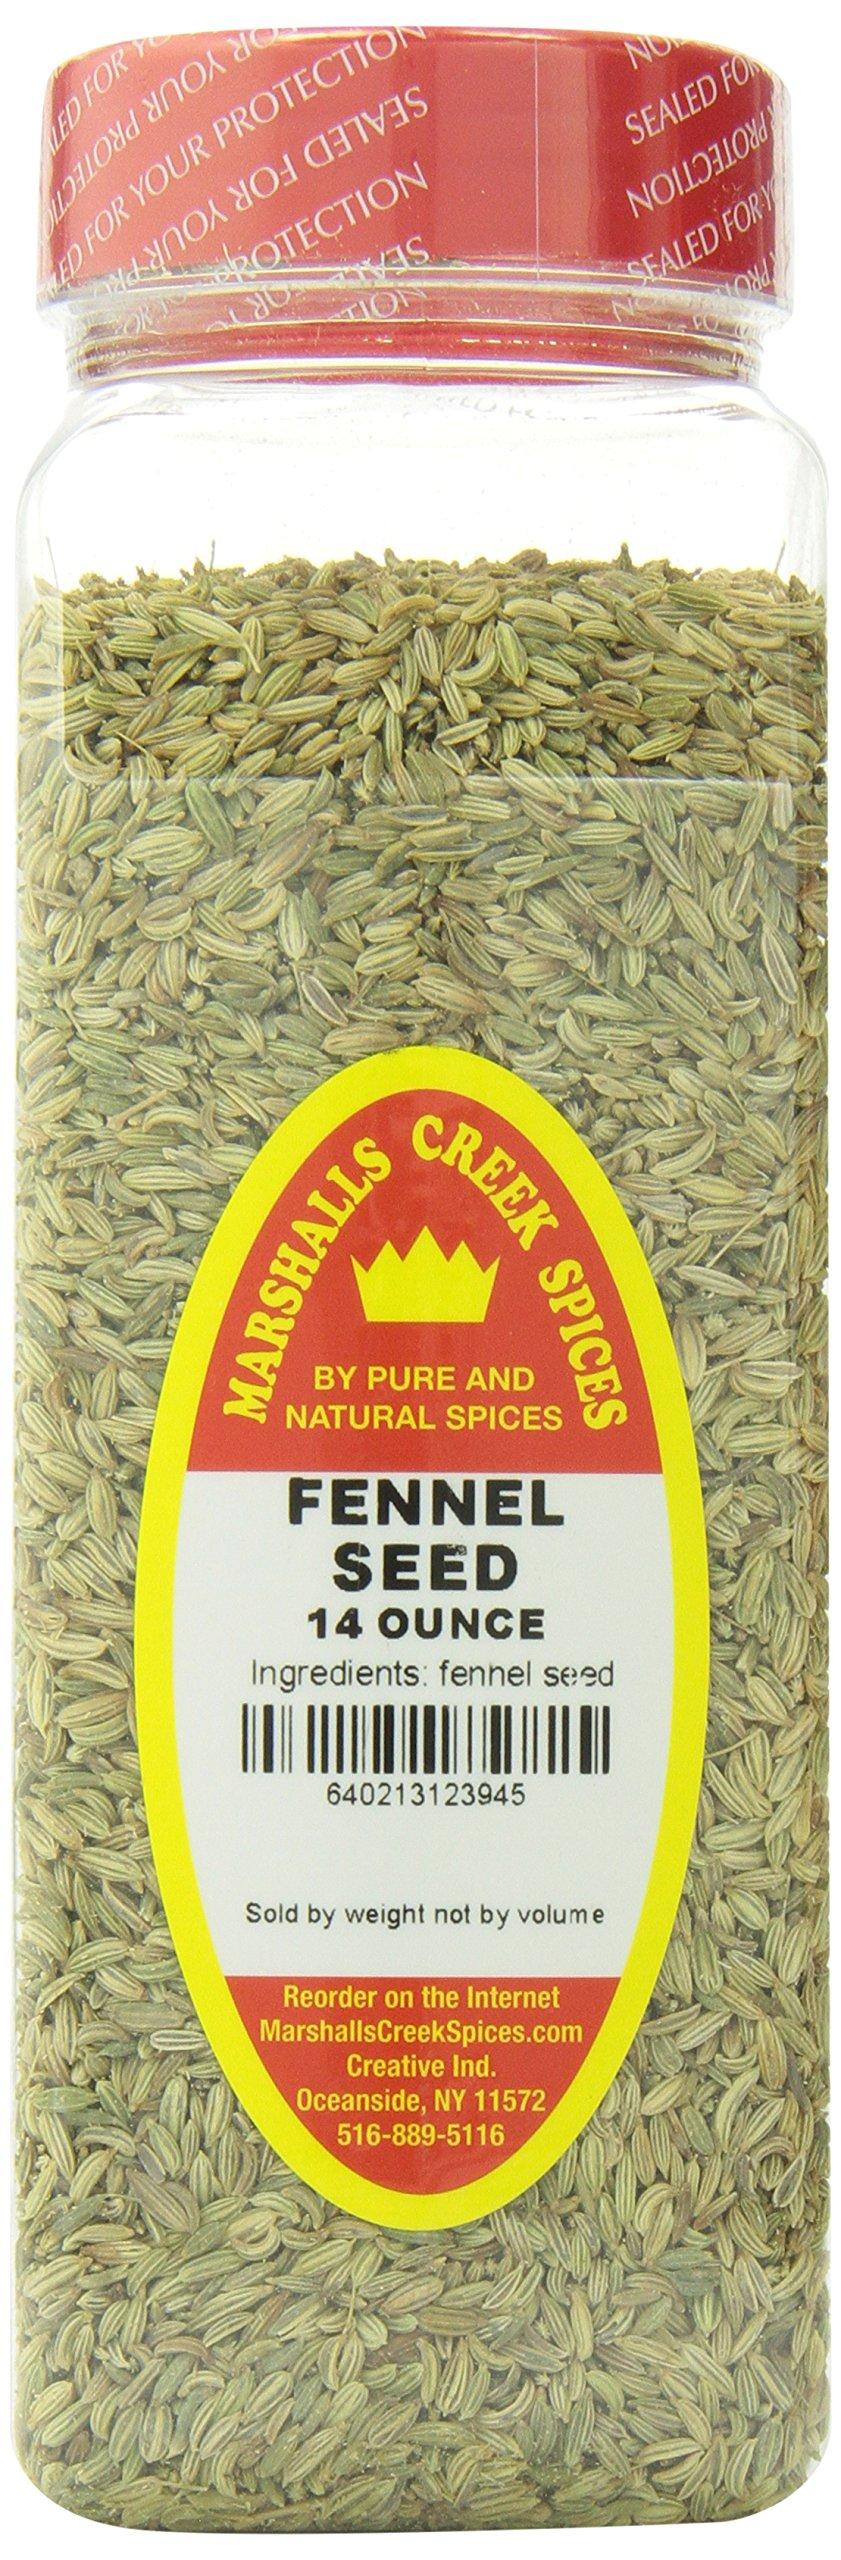 Marshalls Creek Spices Seasoning, Fennel Seed, XL Size, 14 Ounce